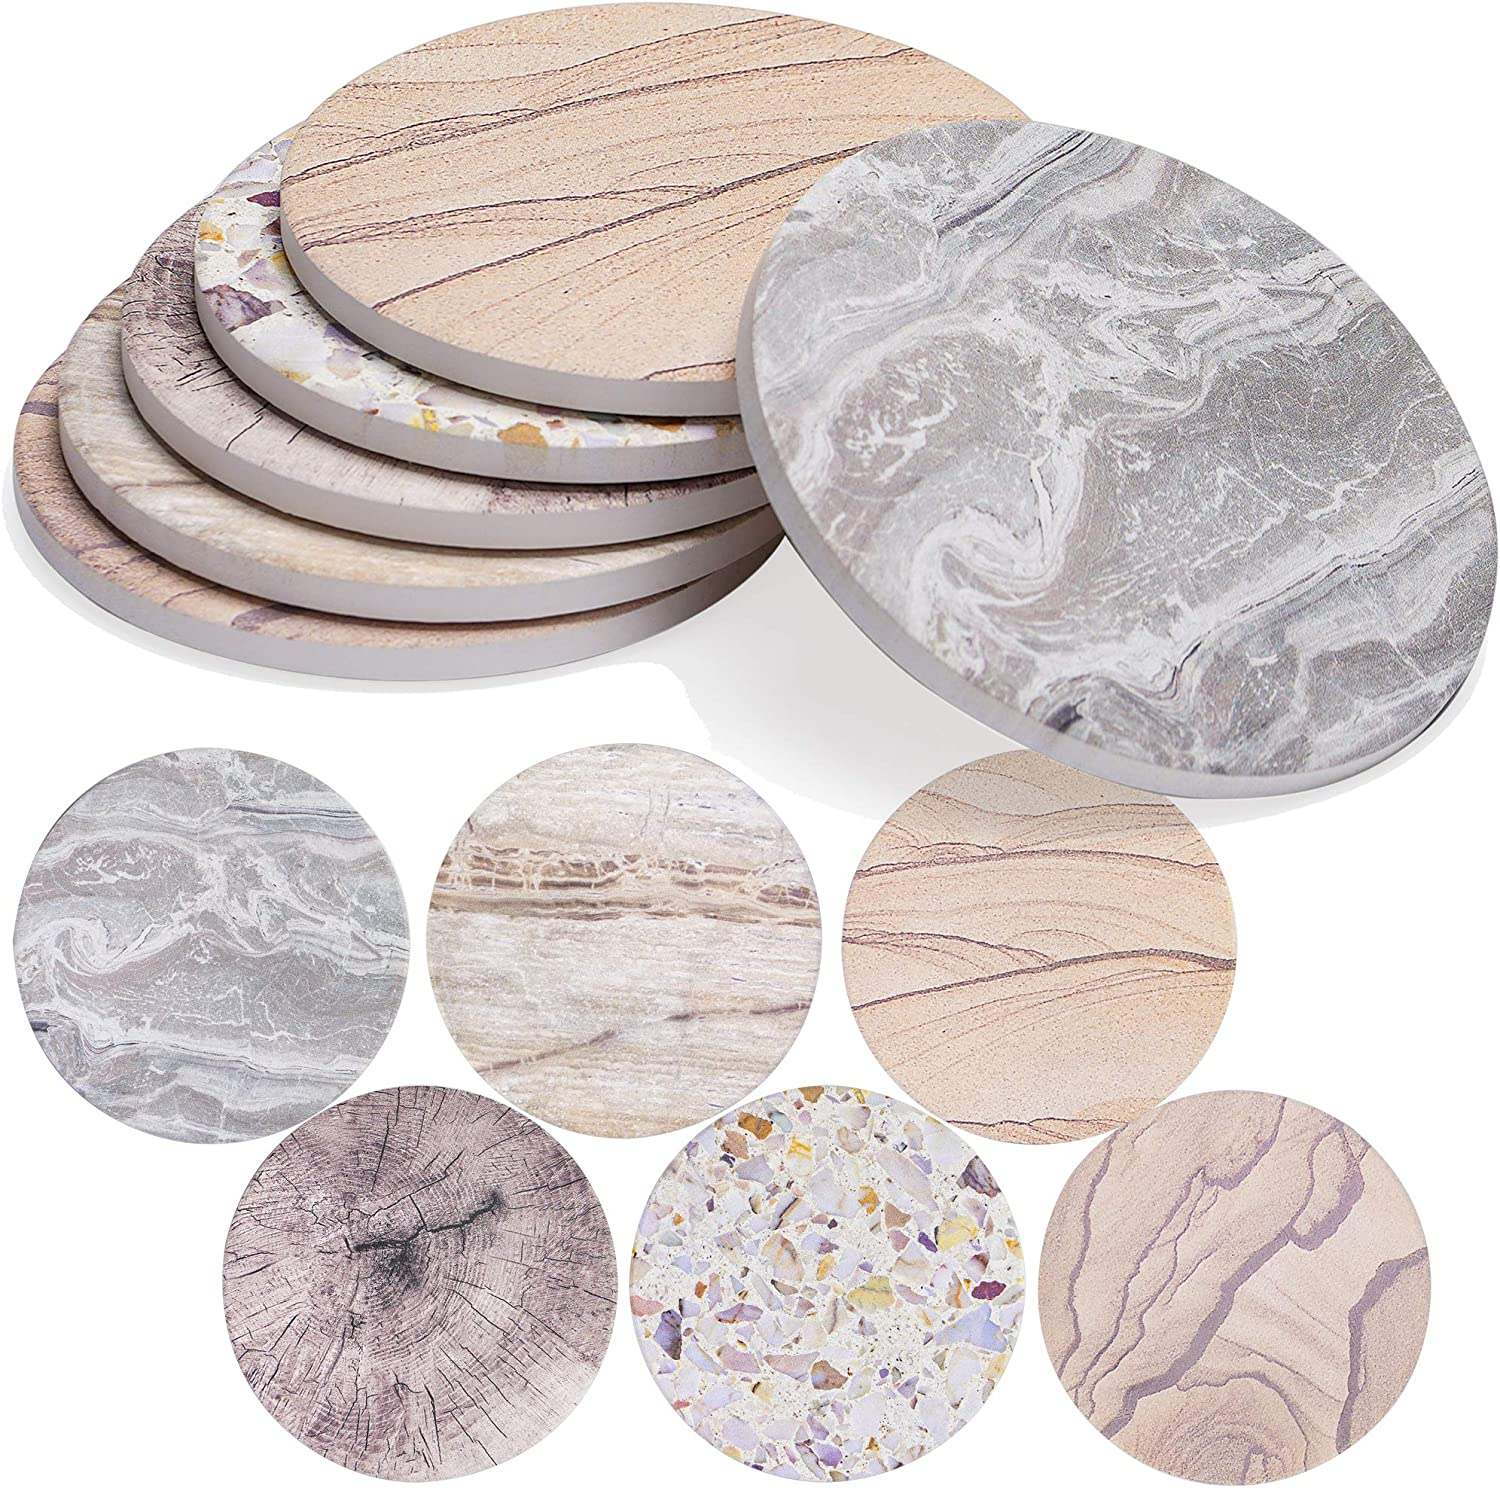 ENKORE Drink Coasters Set of 6 Stone Finish Absorbent Ceramics - 4.3 inch X Large with Cork Back Mat, Modern Furniture Protection for Any table type, Wood, granite, Glass, Marble tabletop - NO holder